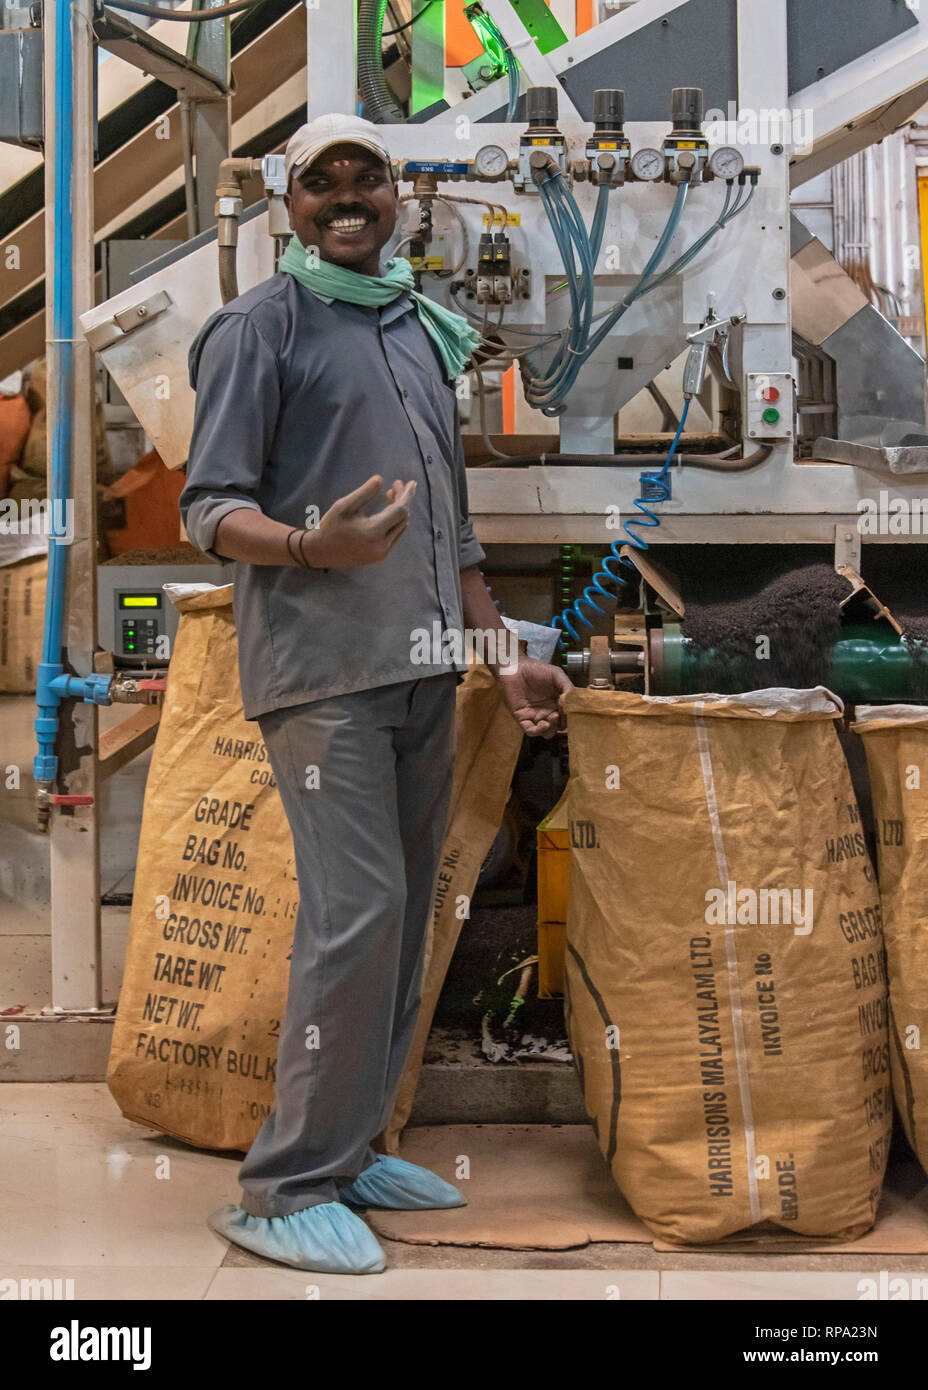 A worker at work in the Lockhart tea factory using new macinery smiling posing for the camera. - Stock Image